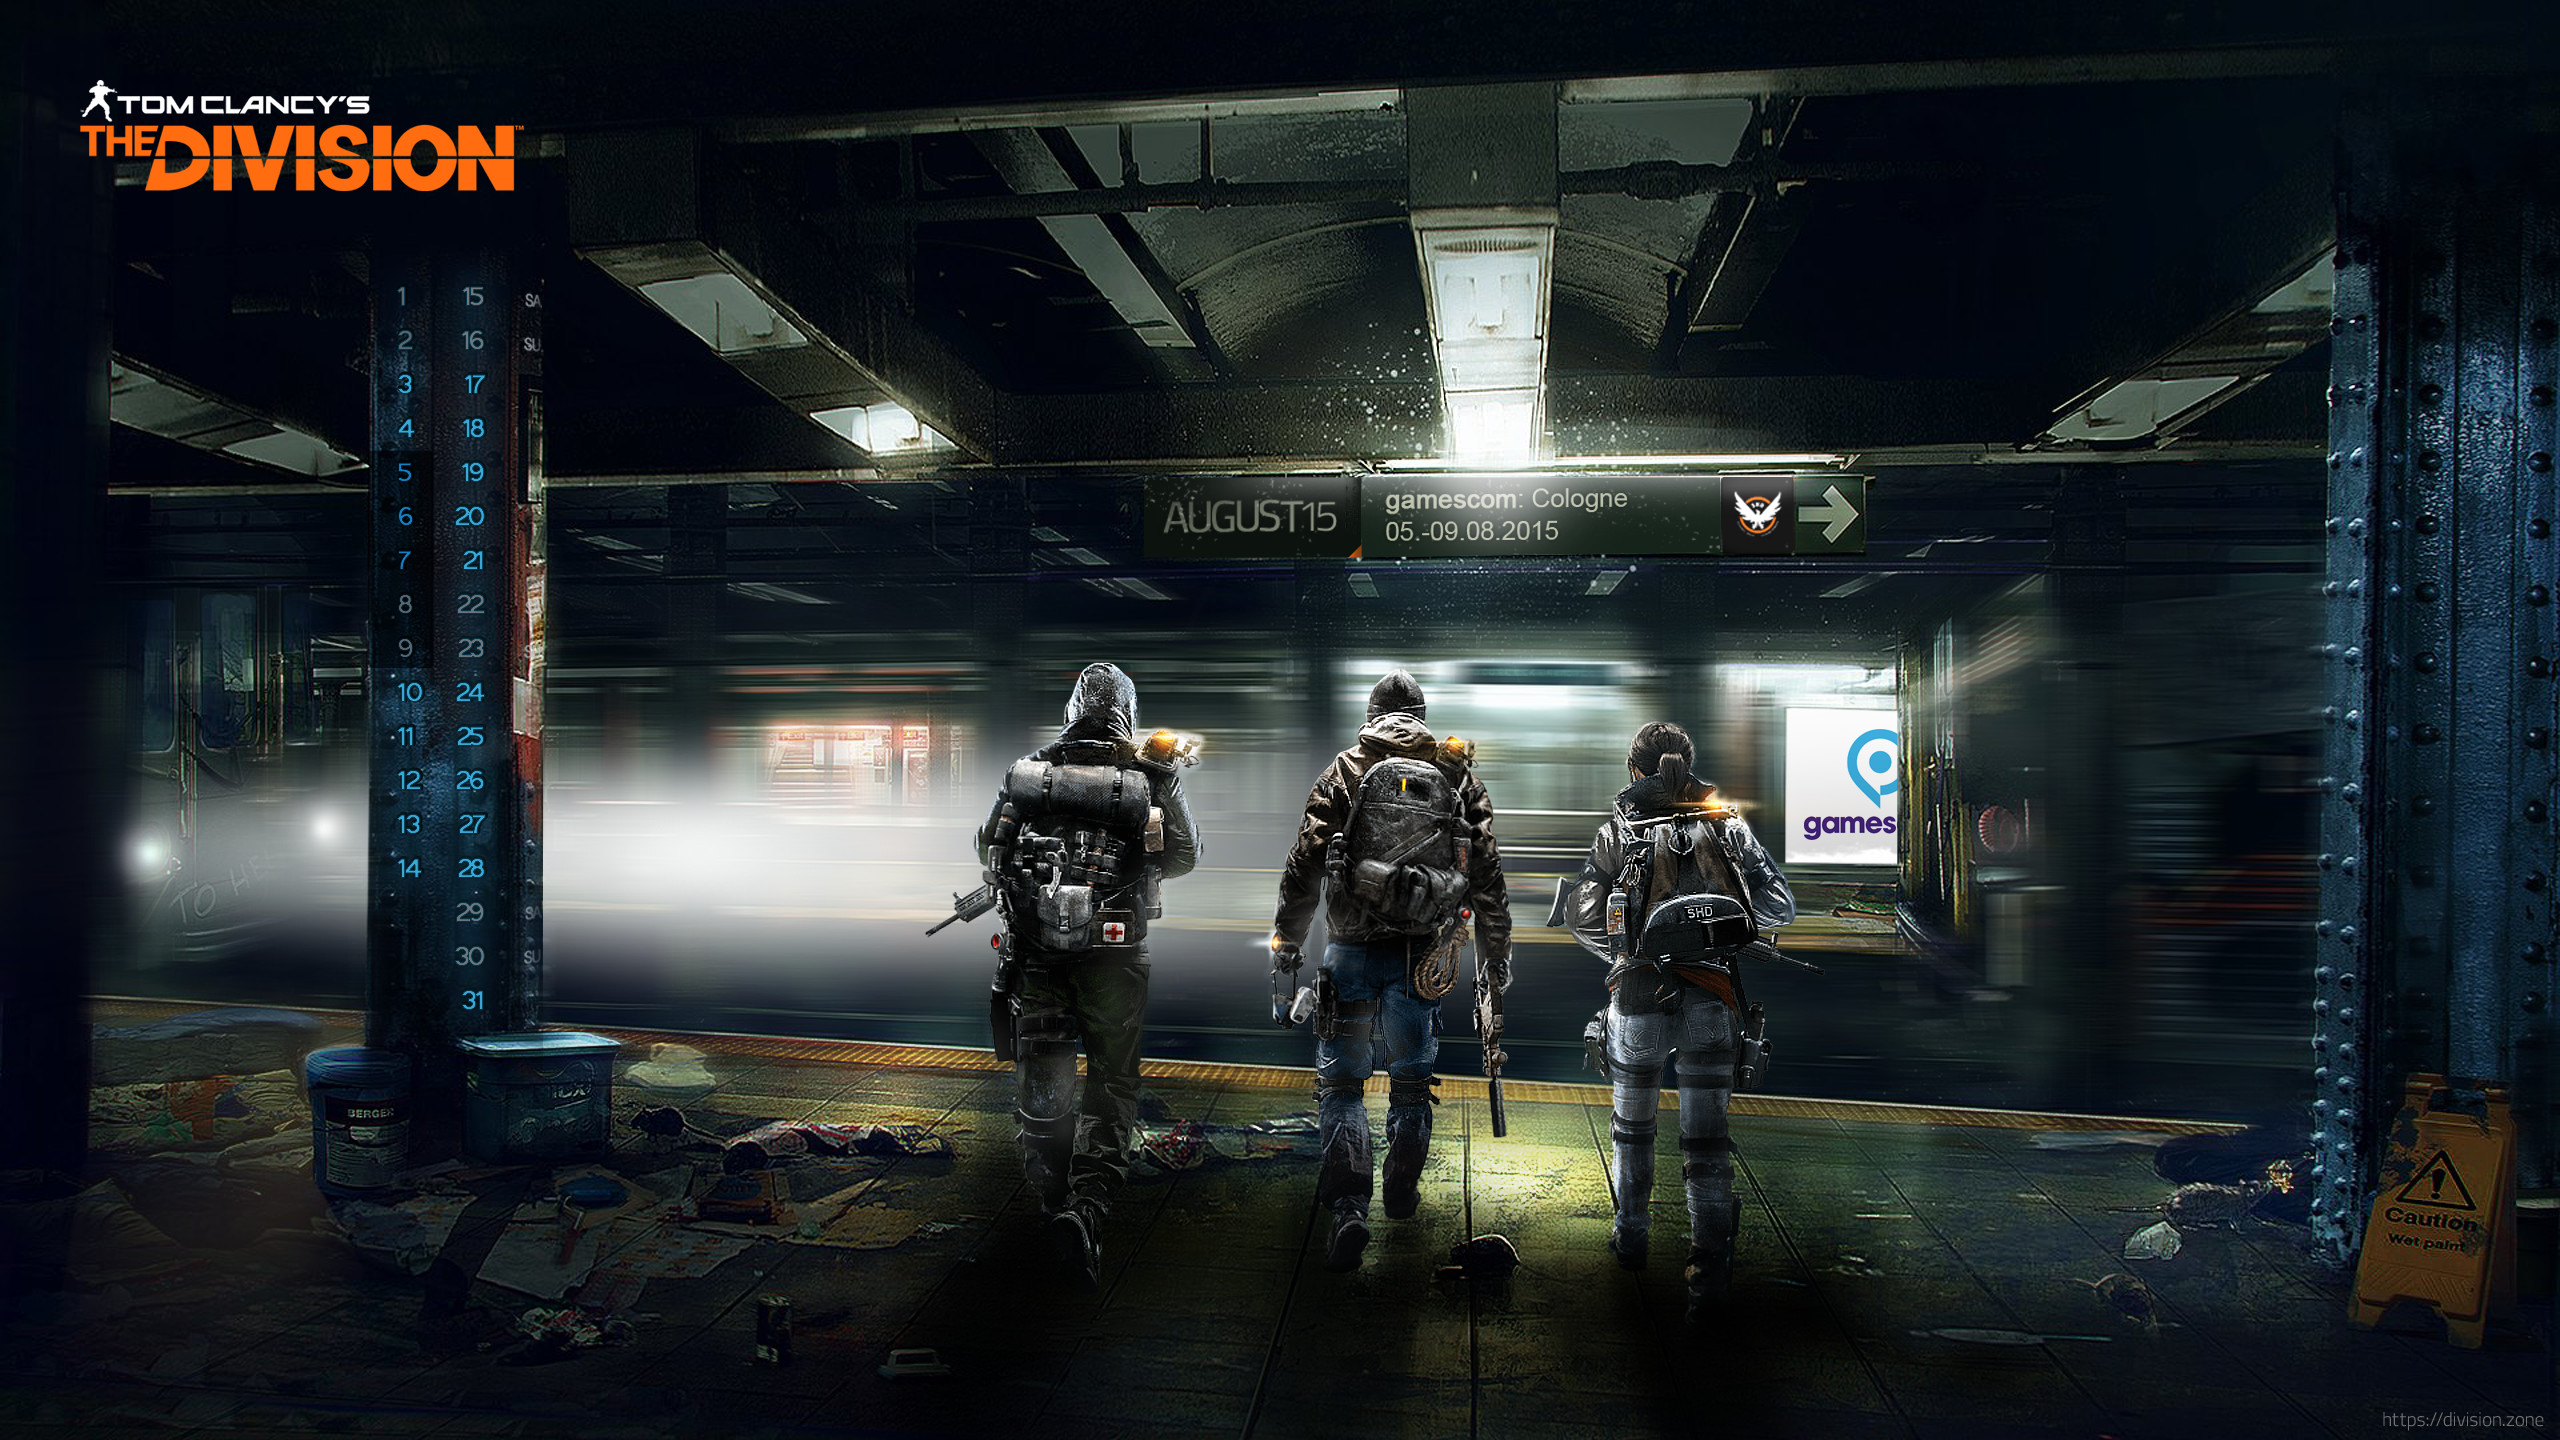 Tom Clancy's The Division Agent wallpapers (46 Wallpapers) – HD Wallpapers